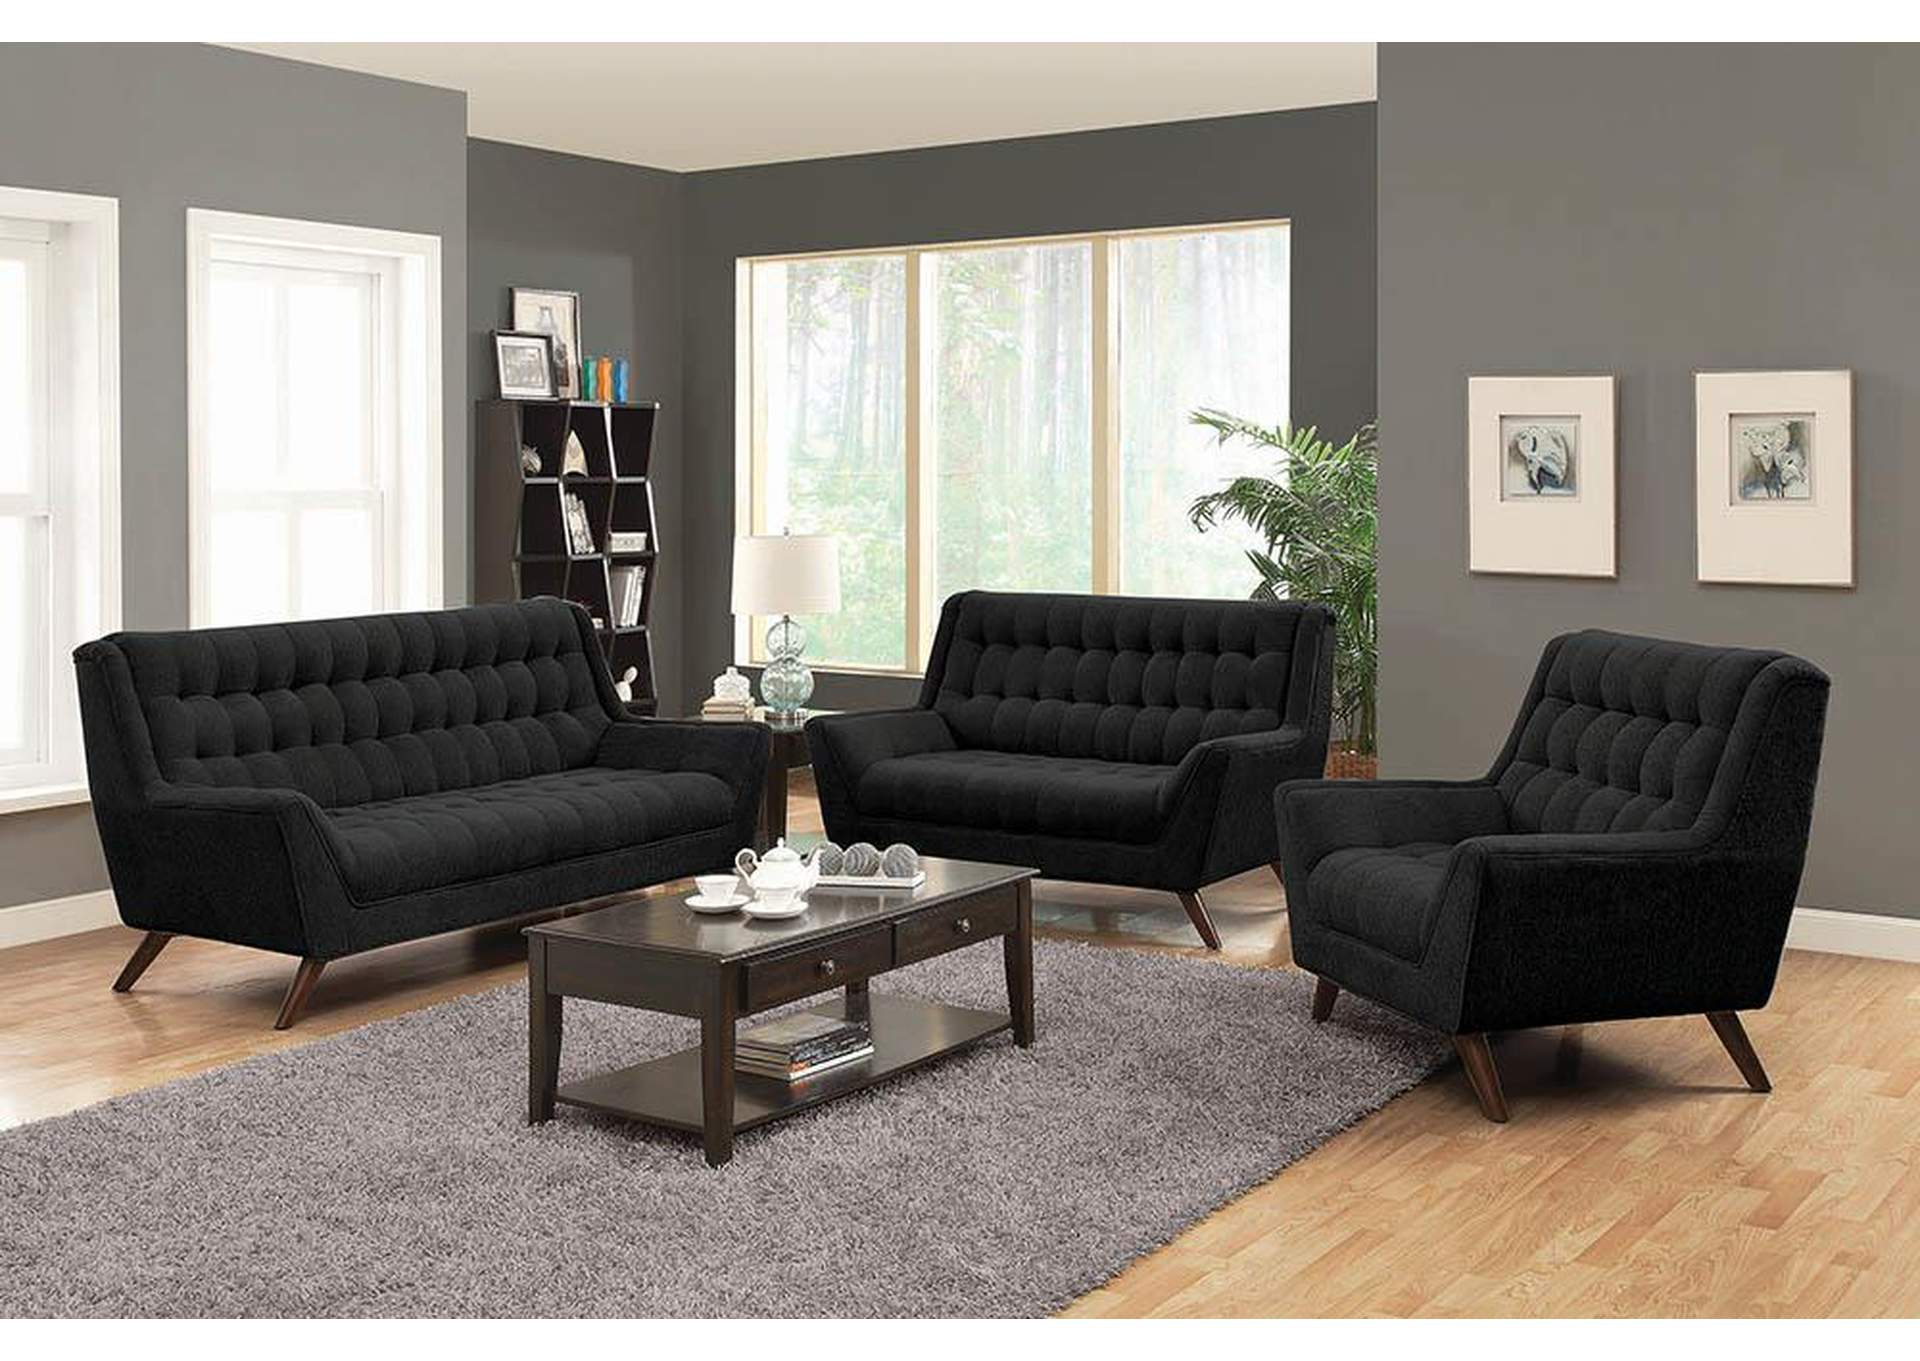 Austin's Couch Potatoes | Furniture Stores Austin, Texas Black Chair